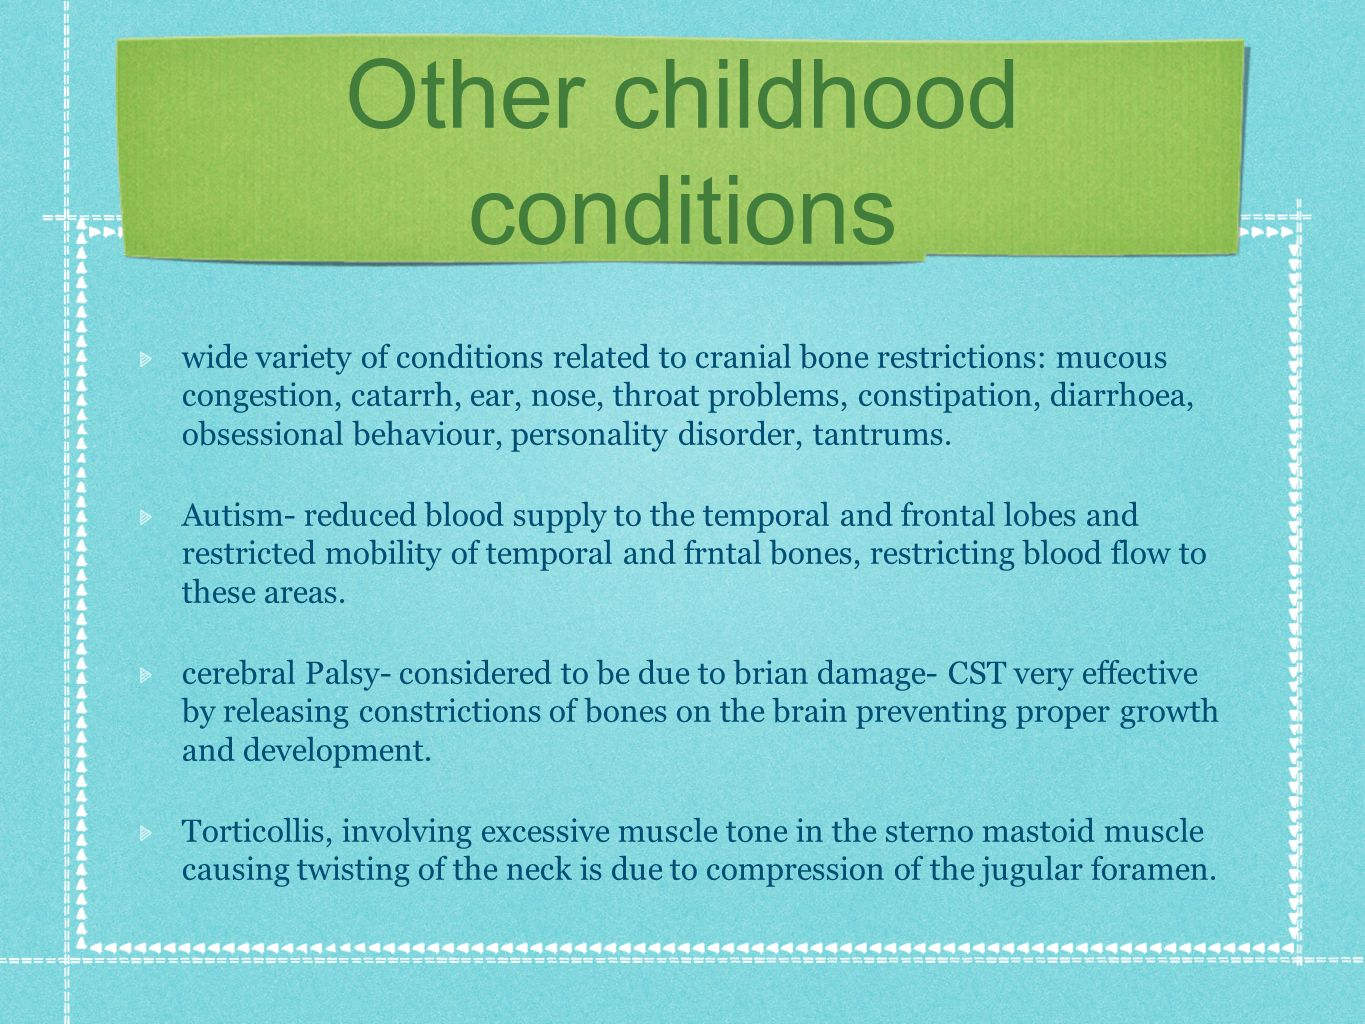 Other childhood conditions wide variety of conditions related to cranial bone restrictions: mucous congestion, catarrh, ear, nose, throat problems, constipation, diarrhoea, obsessional behaviour, personality disorder, tantrums.